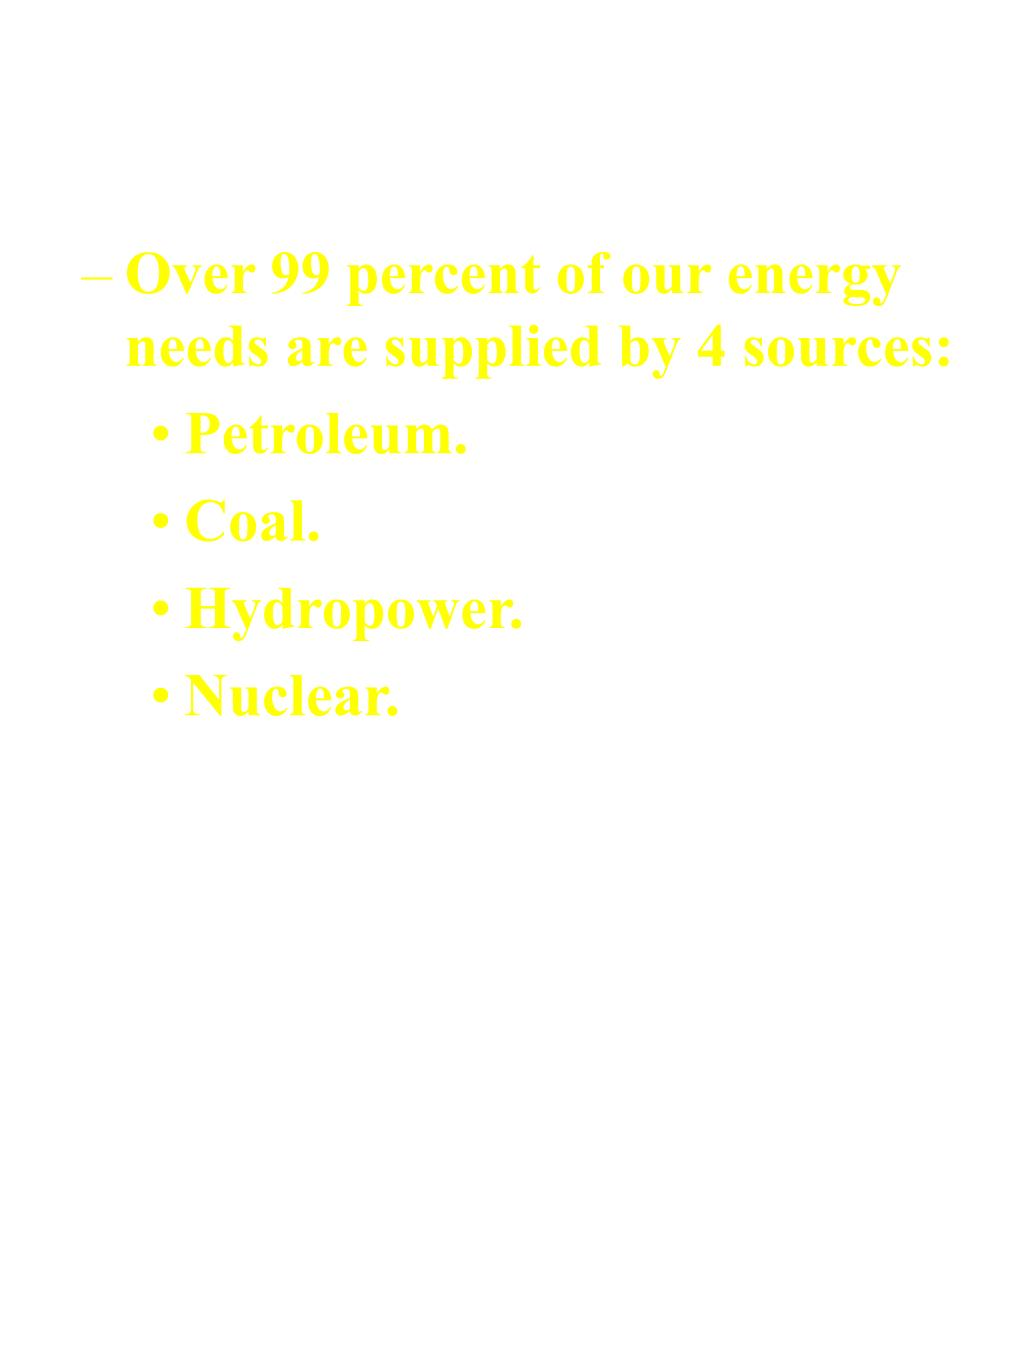 Over 99 percent of our energy needs are supplied by 4 sources: